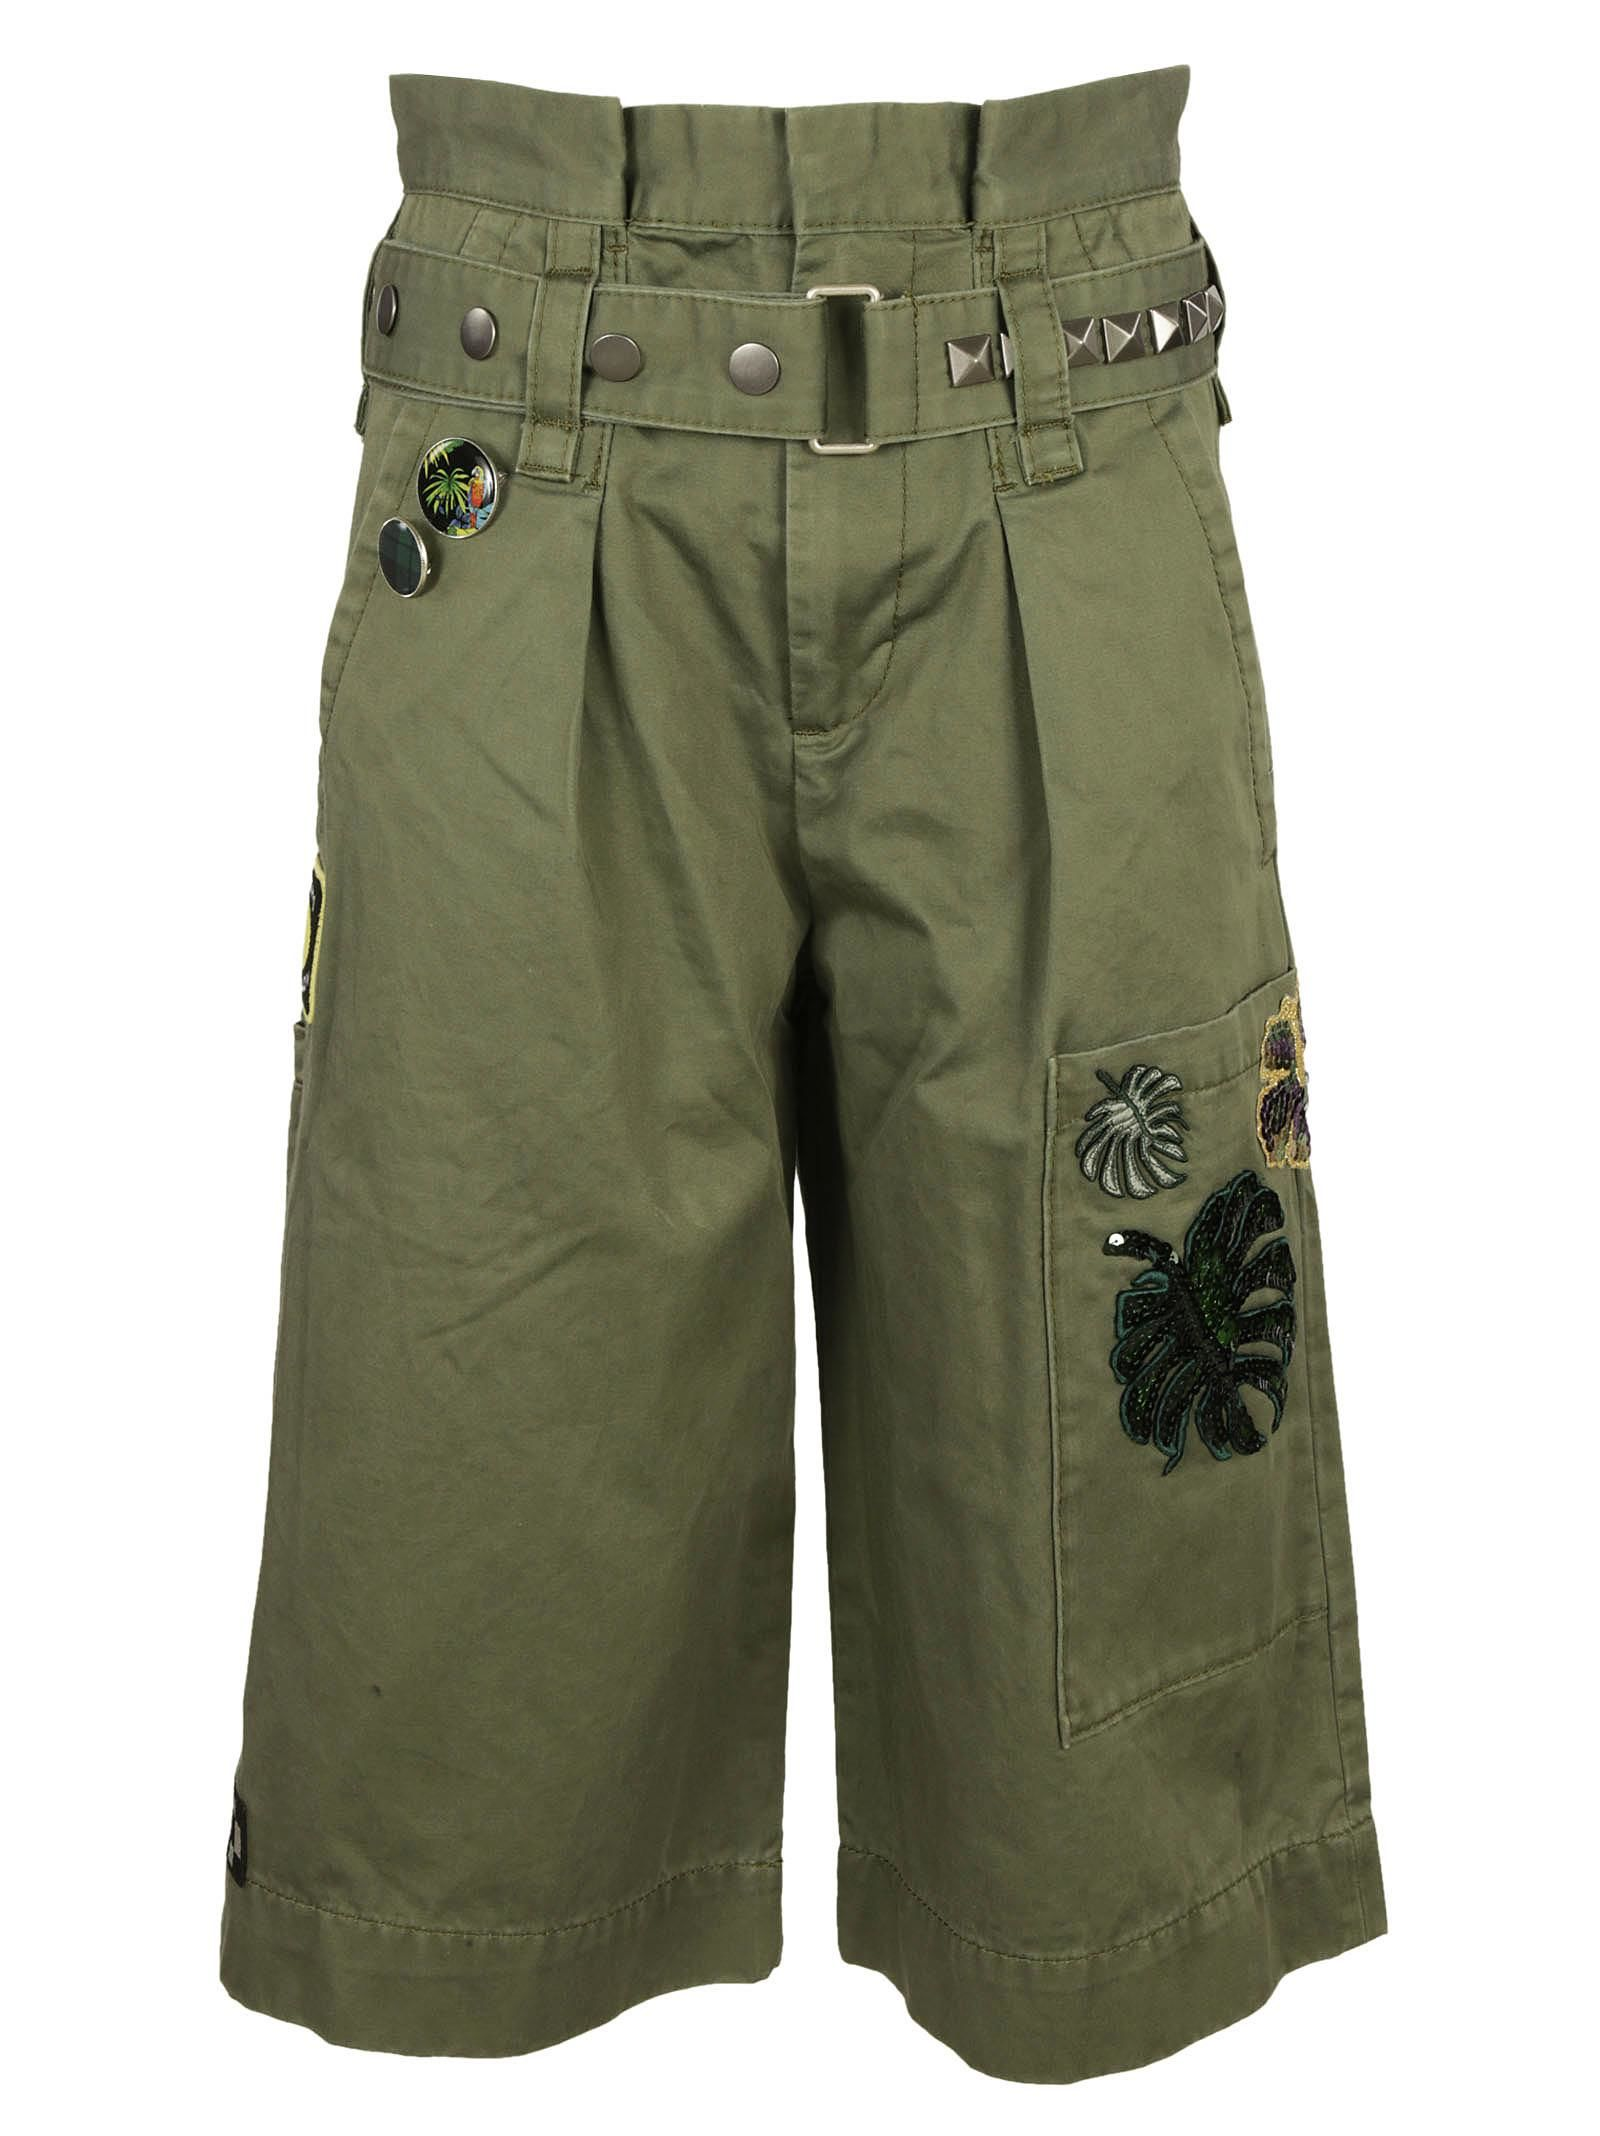 Marc Jacobs Embroidered Long Cargo Shorts